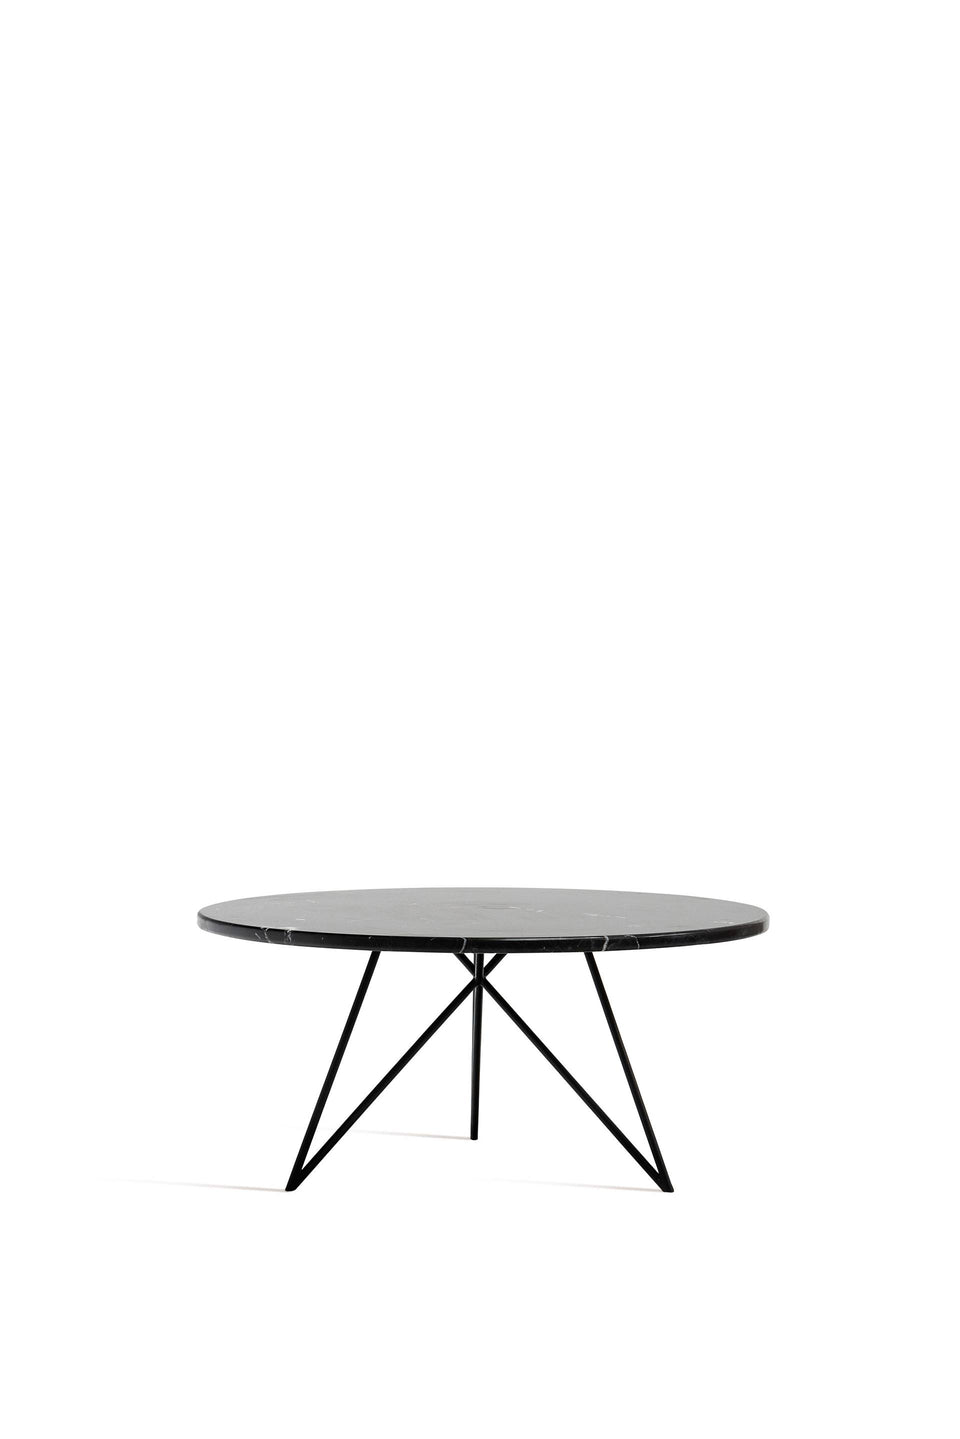 COFFEE TABLE, ROUND, LARGE BLACK